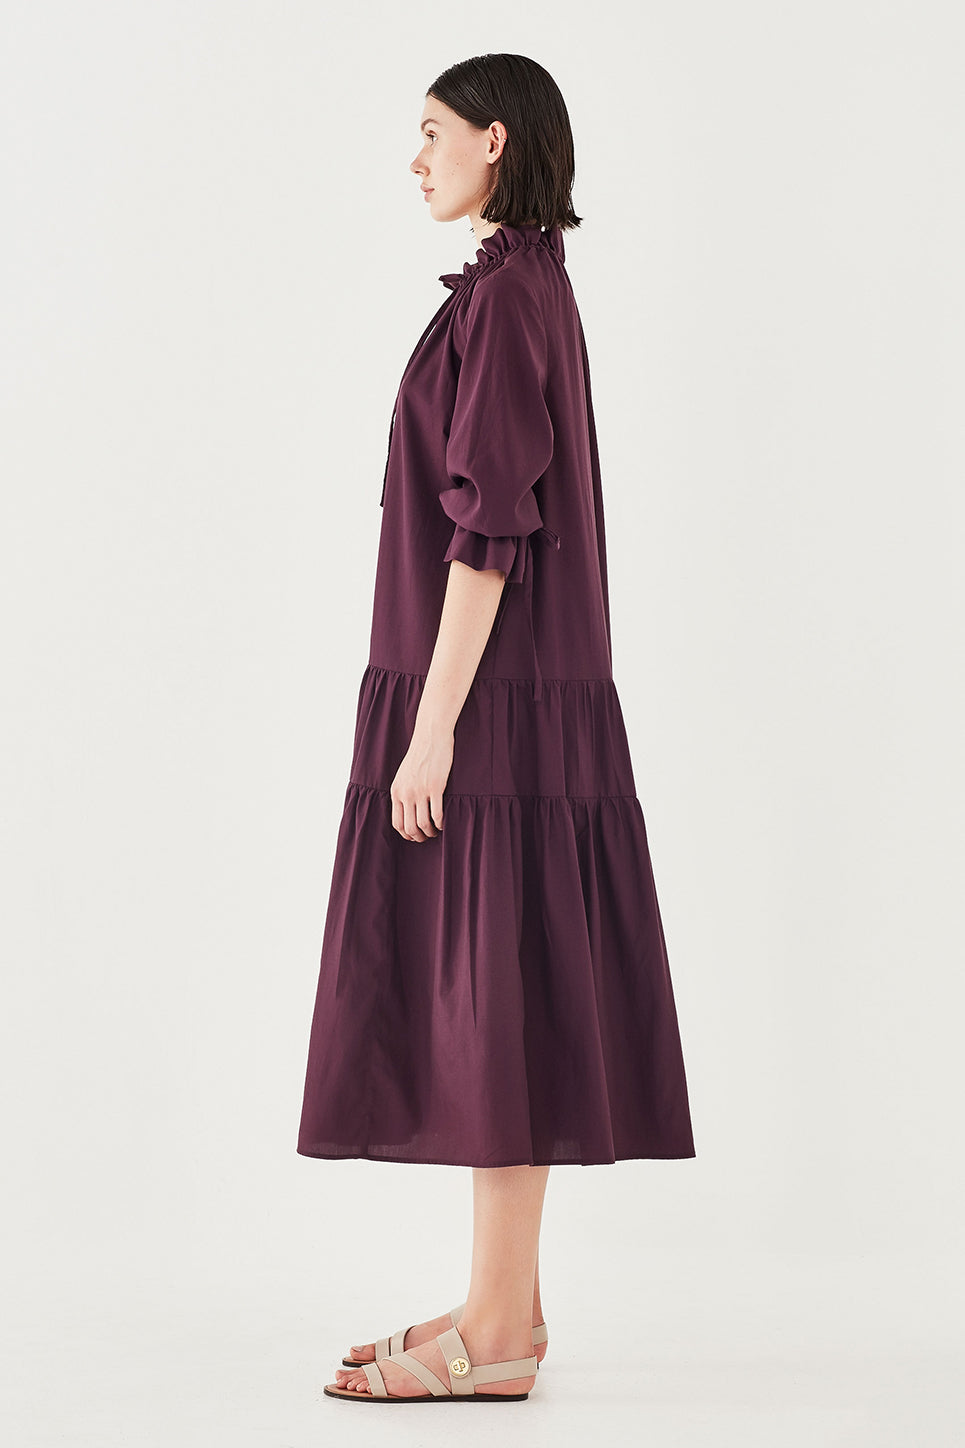 The Primrose Dress in Aubergine